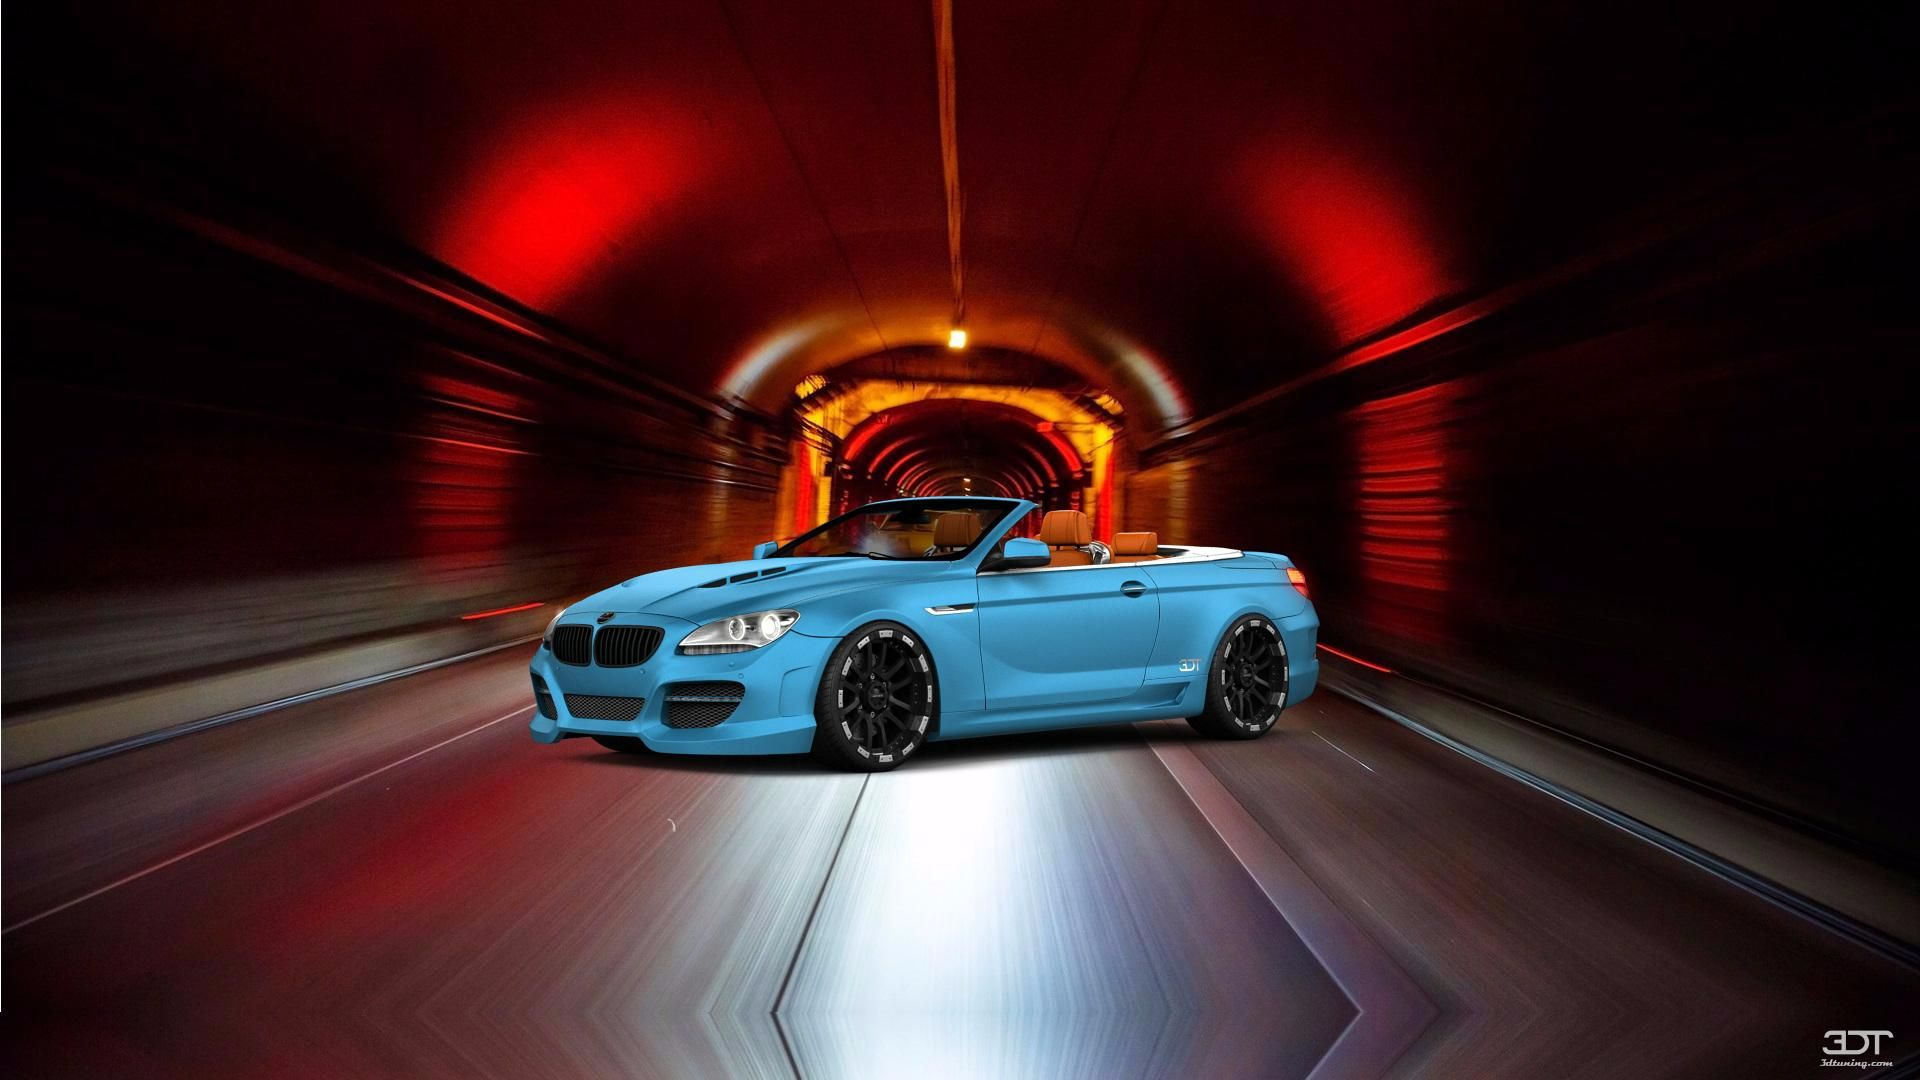 Checkout my tuning BMW 6Series 2012 at 3DTuning 3dtuning tuning